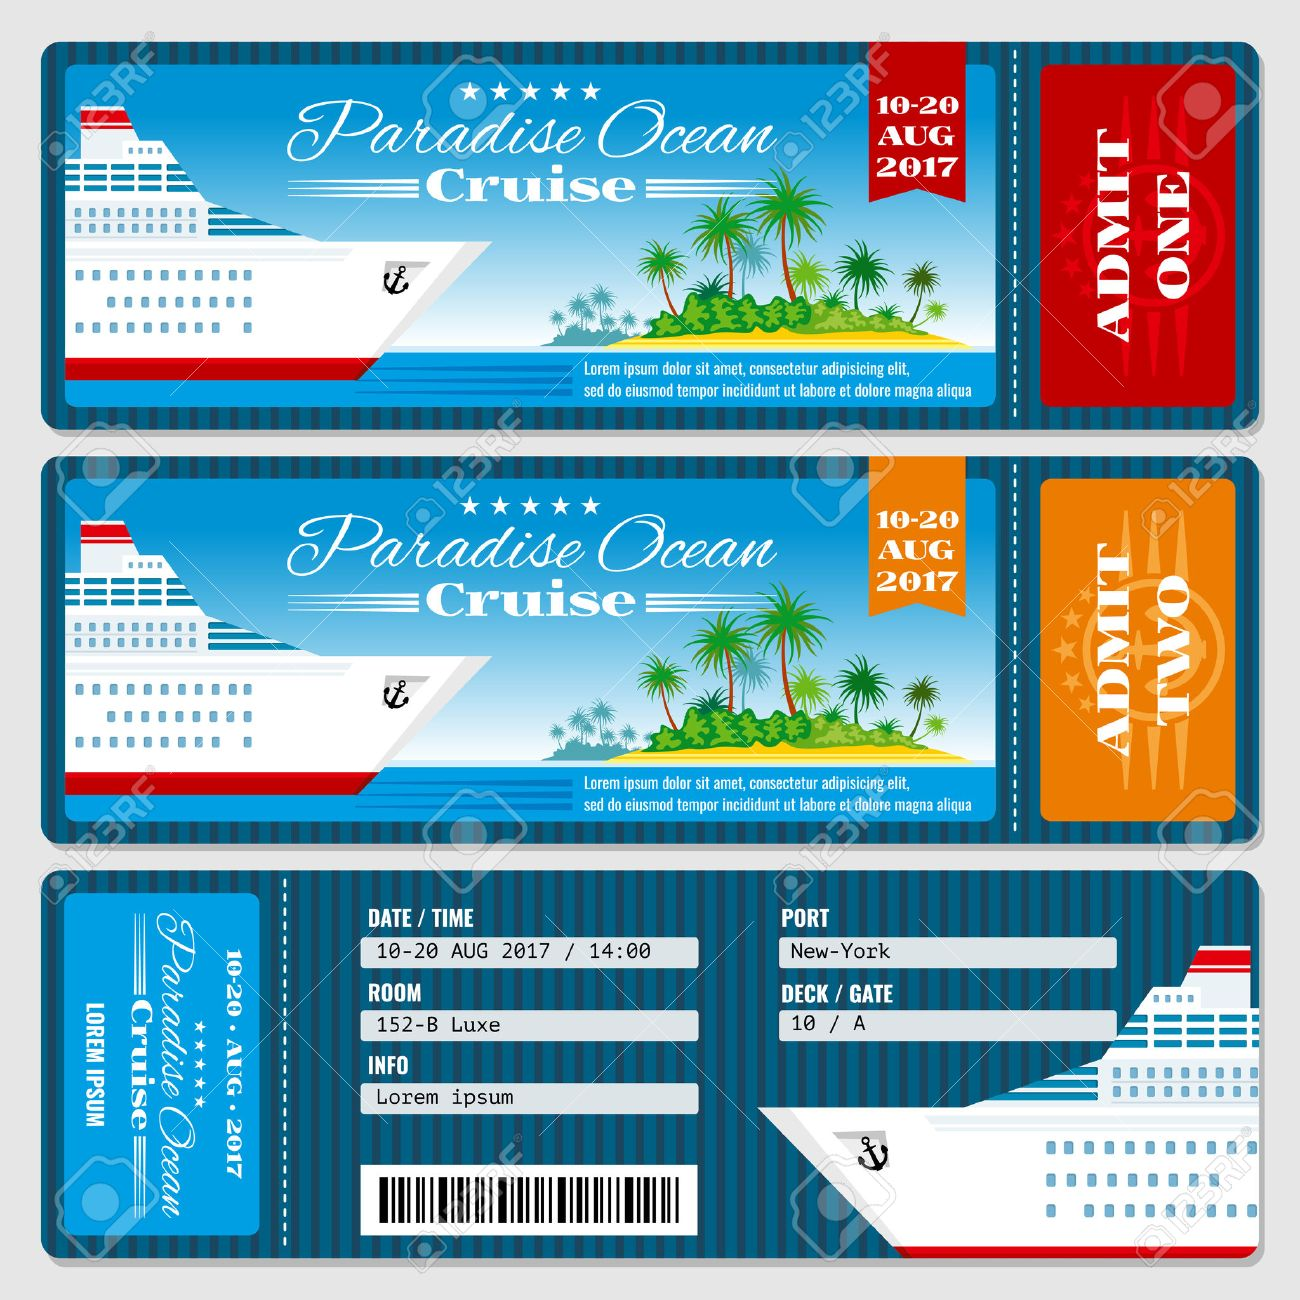 Cruise Ship Boarding Pass Ticket Honeymoon Wedding Cruise